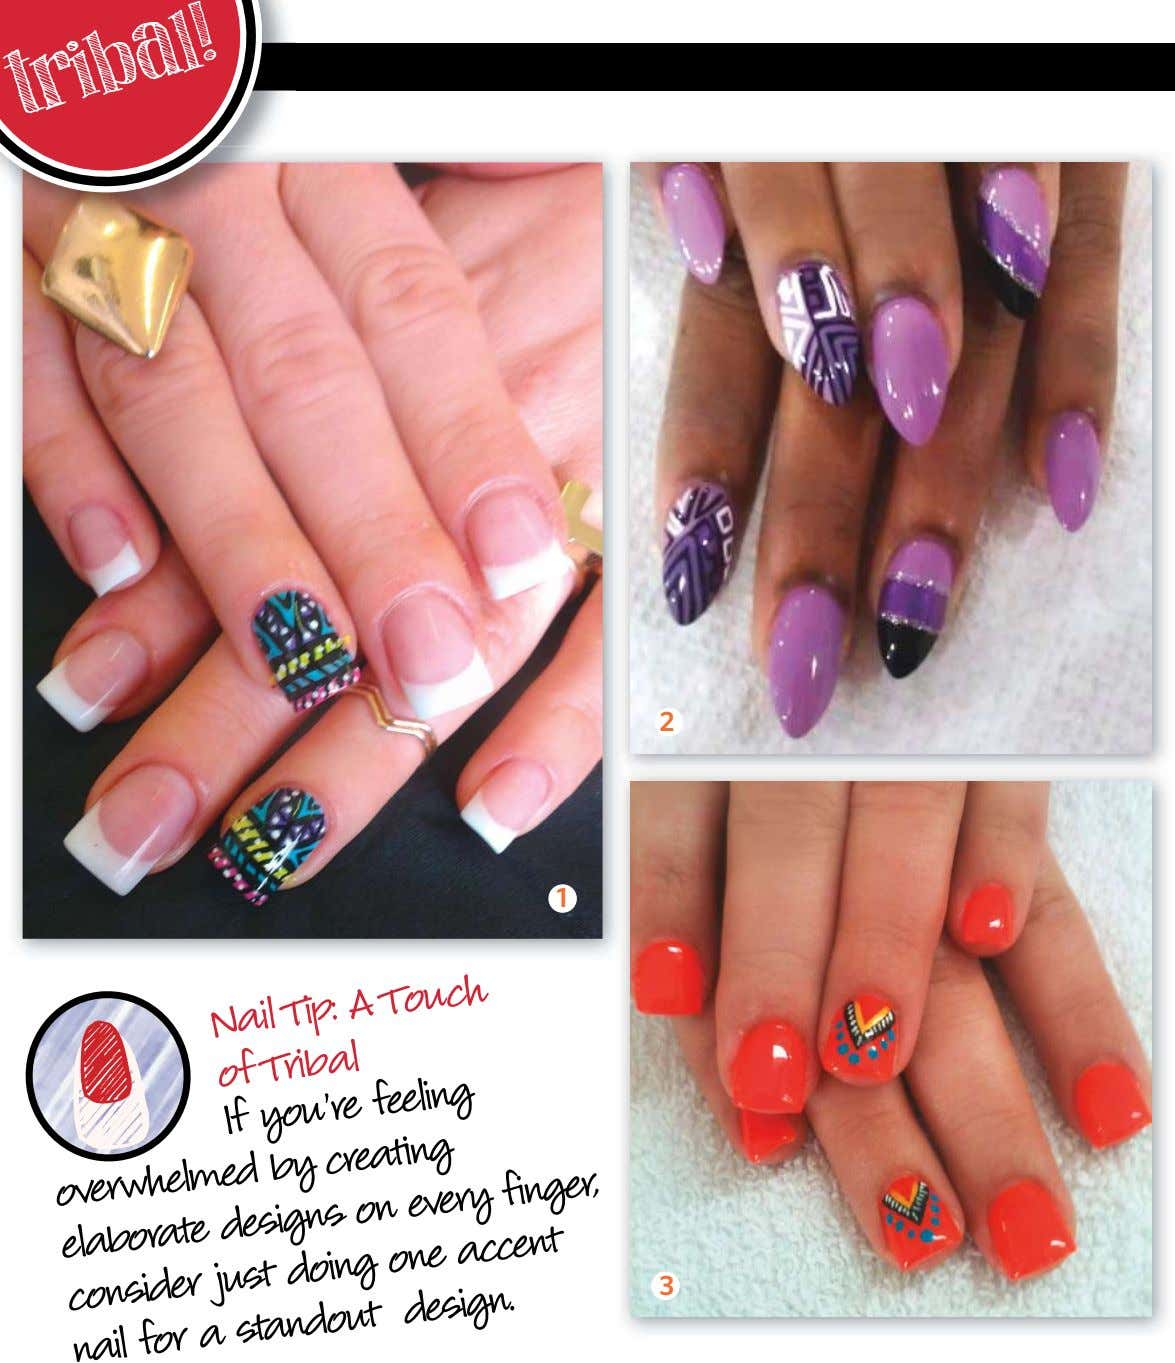 tribal! 2 1 Nail Tip: A Touch of Tribal If you're feeling overwhelmed by creating